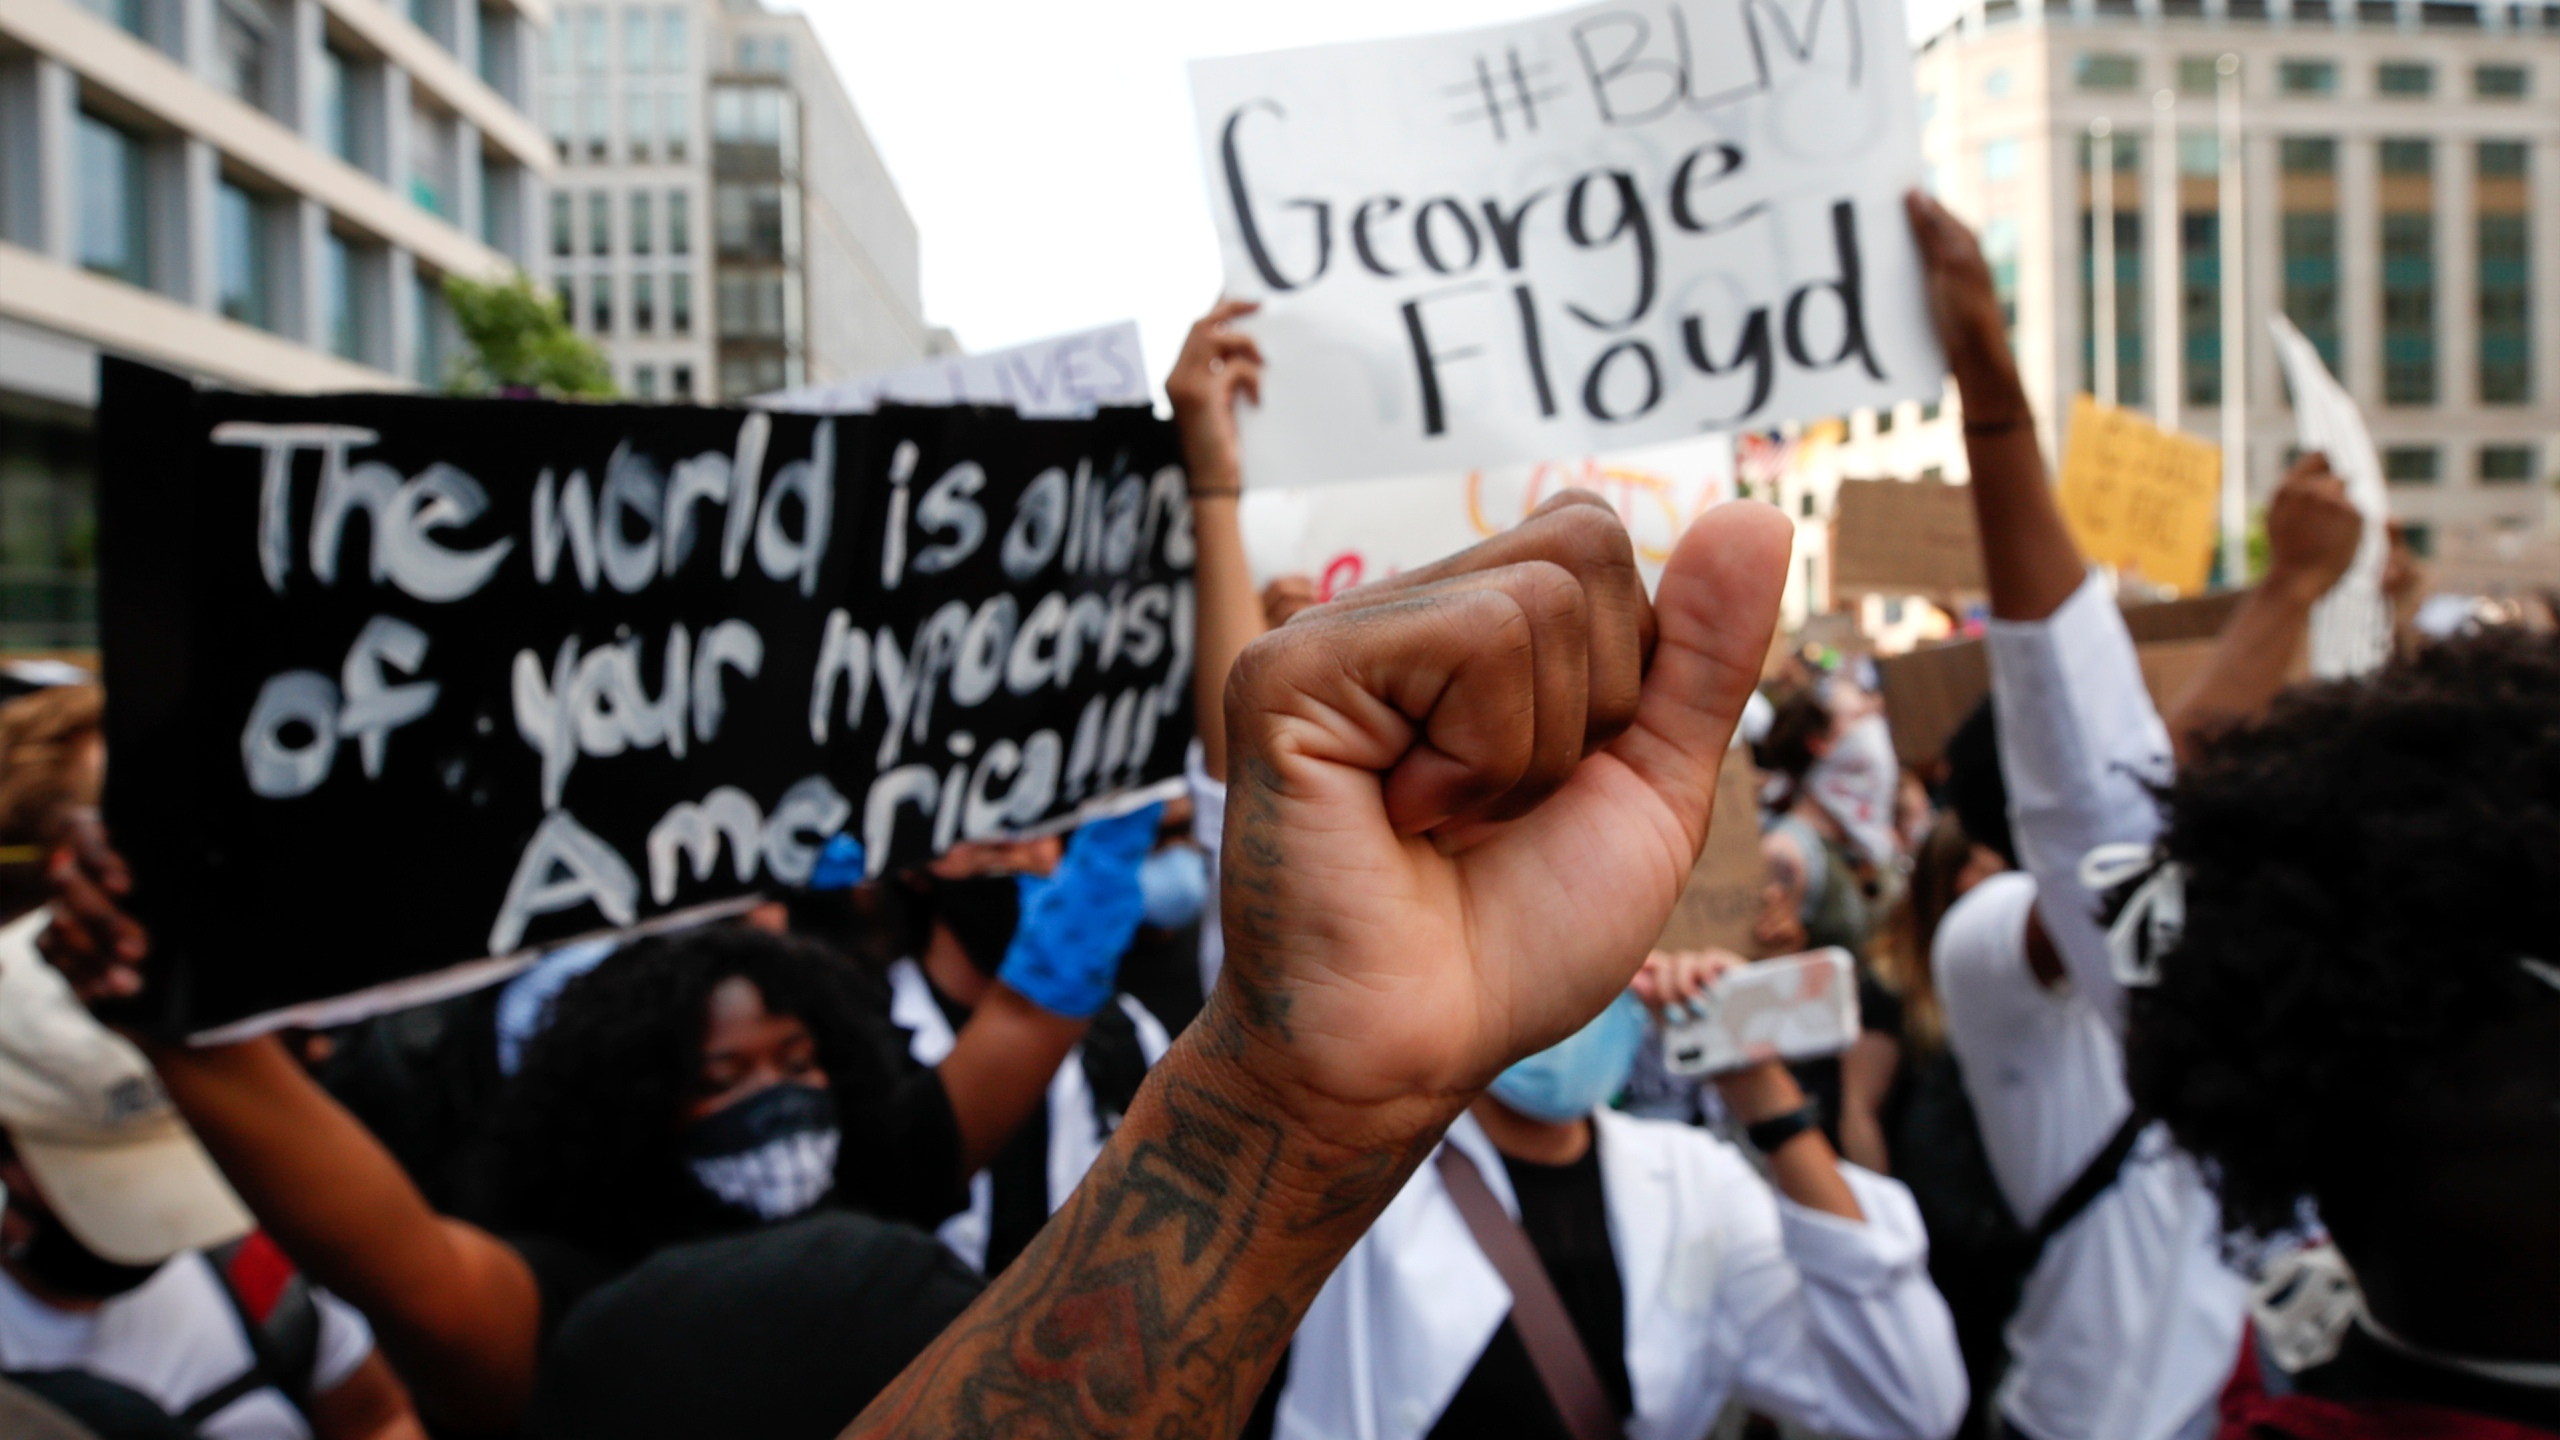 In this June 3, 2020, file photo, demonstrators gather near the White House in Washington to protest the death of George Floyd. A report released Thursday, July 15, 2021, says more than 90% of donors who supported racial equity initiatives in 2018 have yet to report how much they gave in 2020. (AP Photo/Alex Brandon, File)